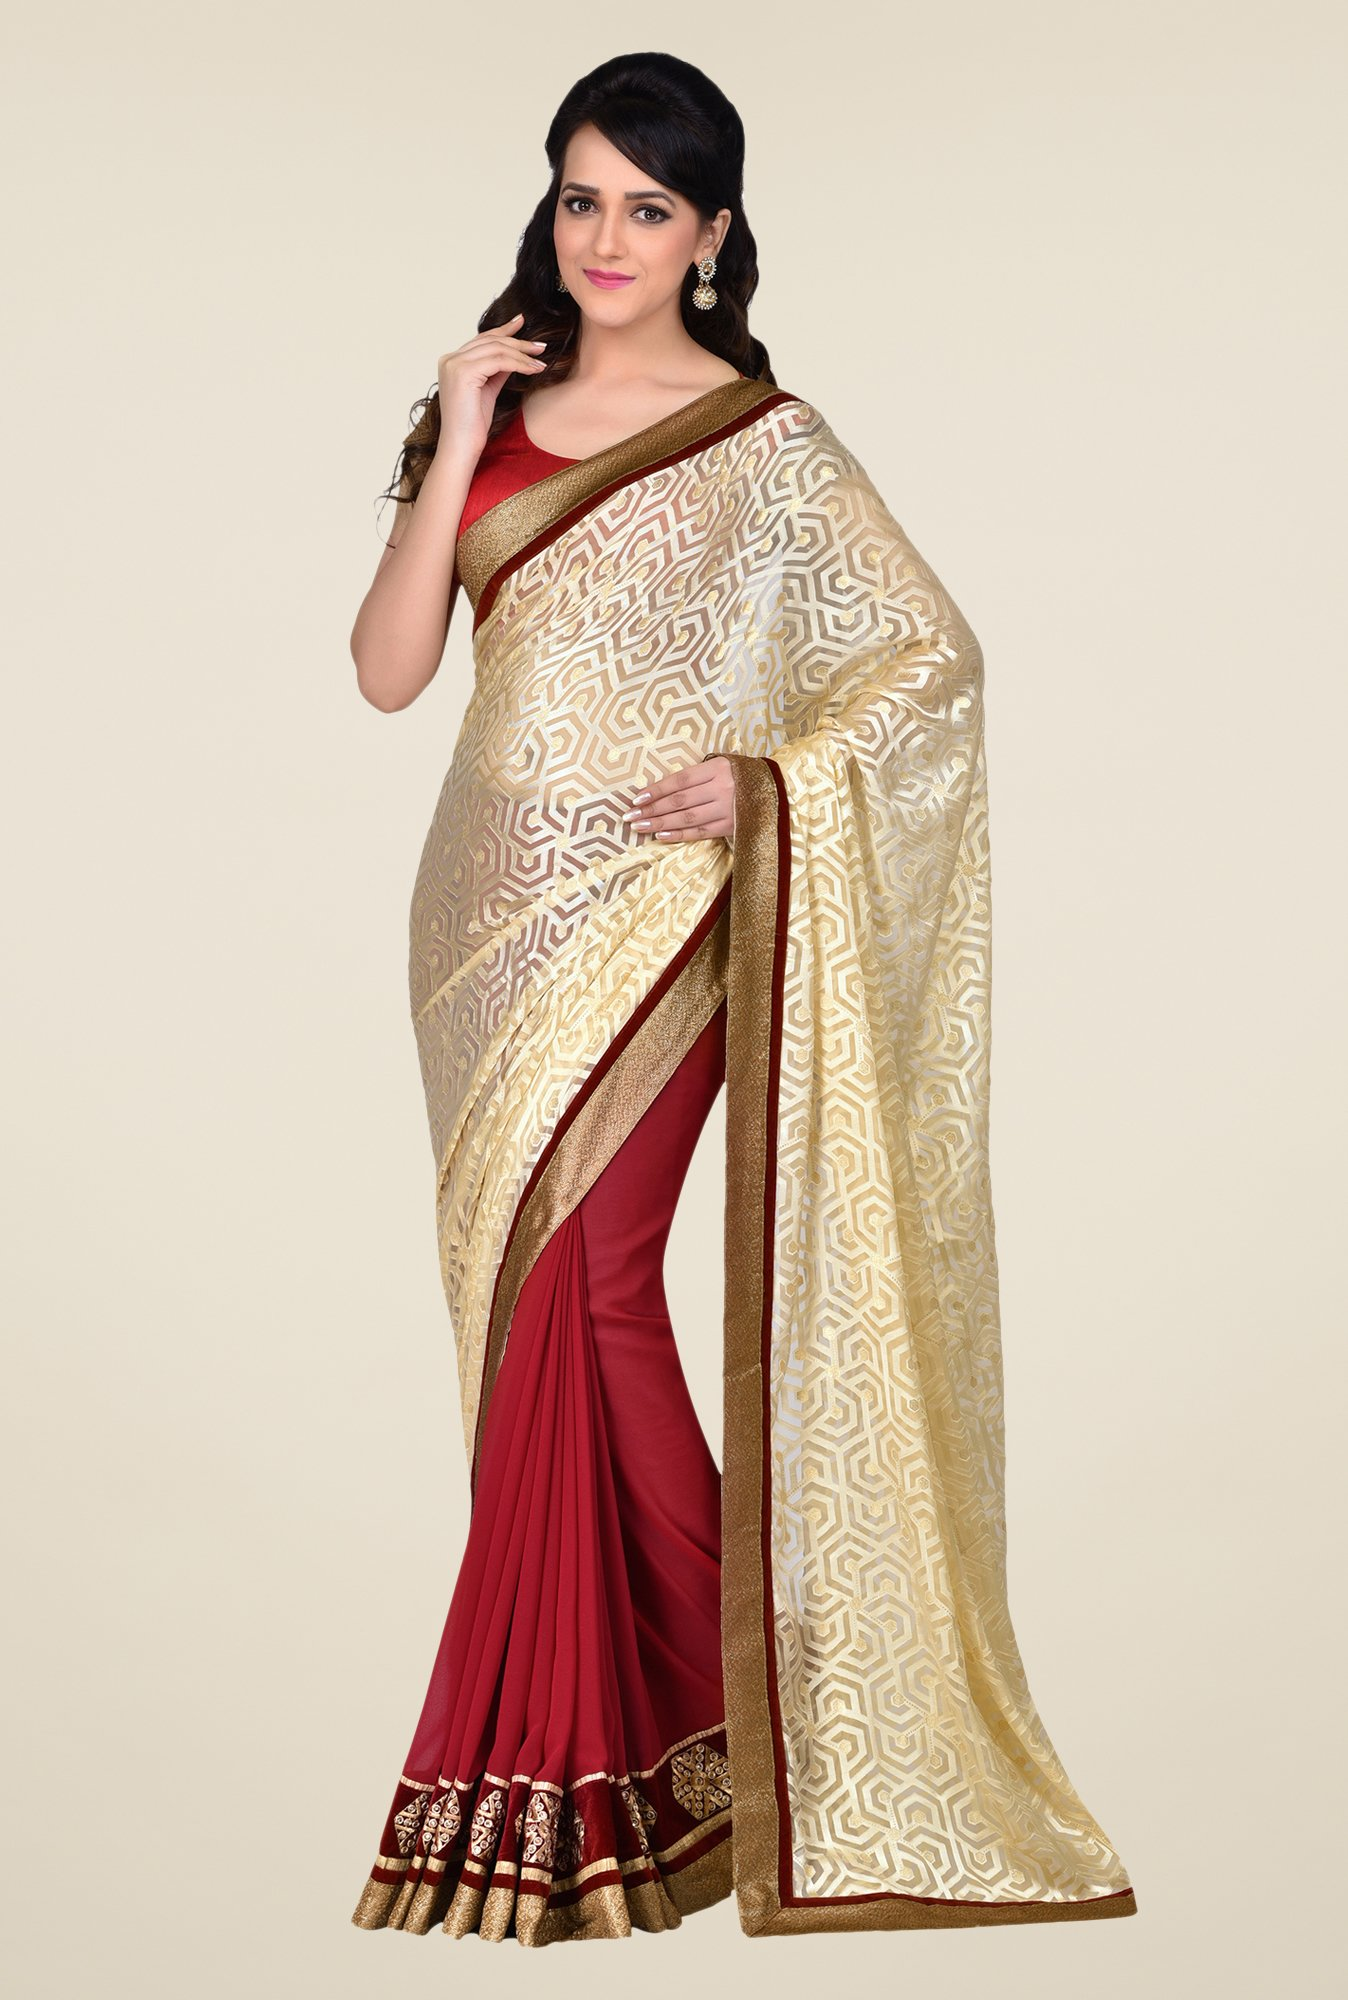 Shonaya Red & Beige Georgette & Brasso Saree